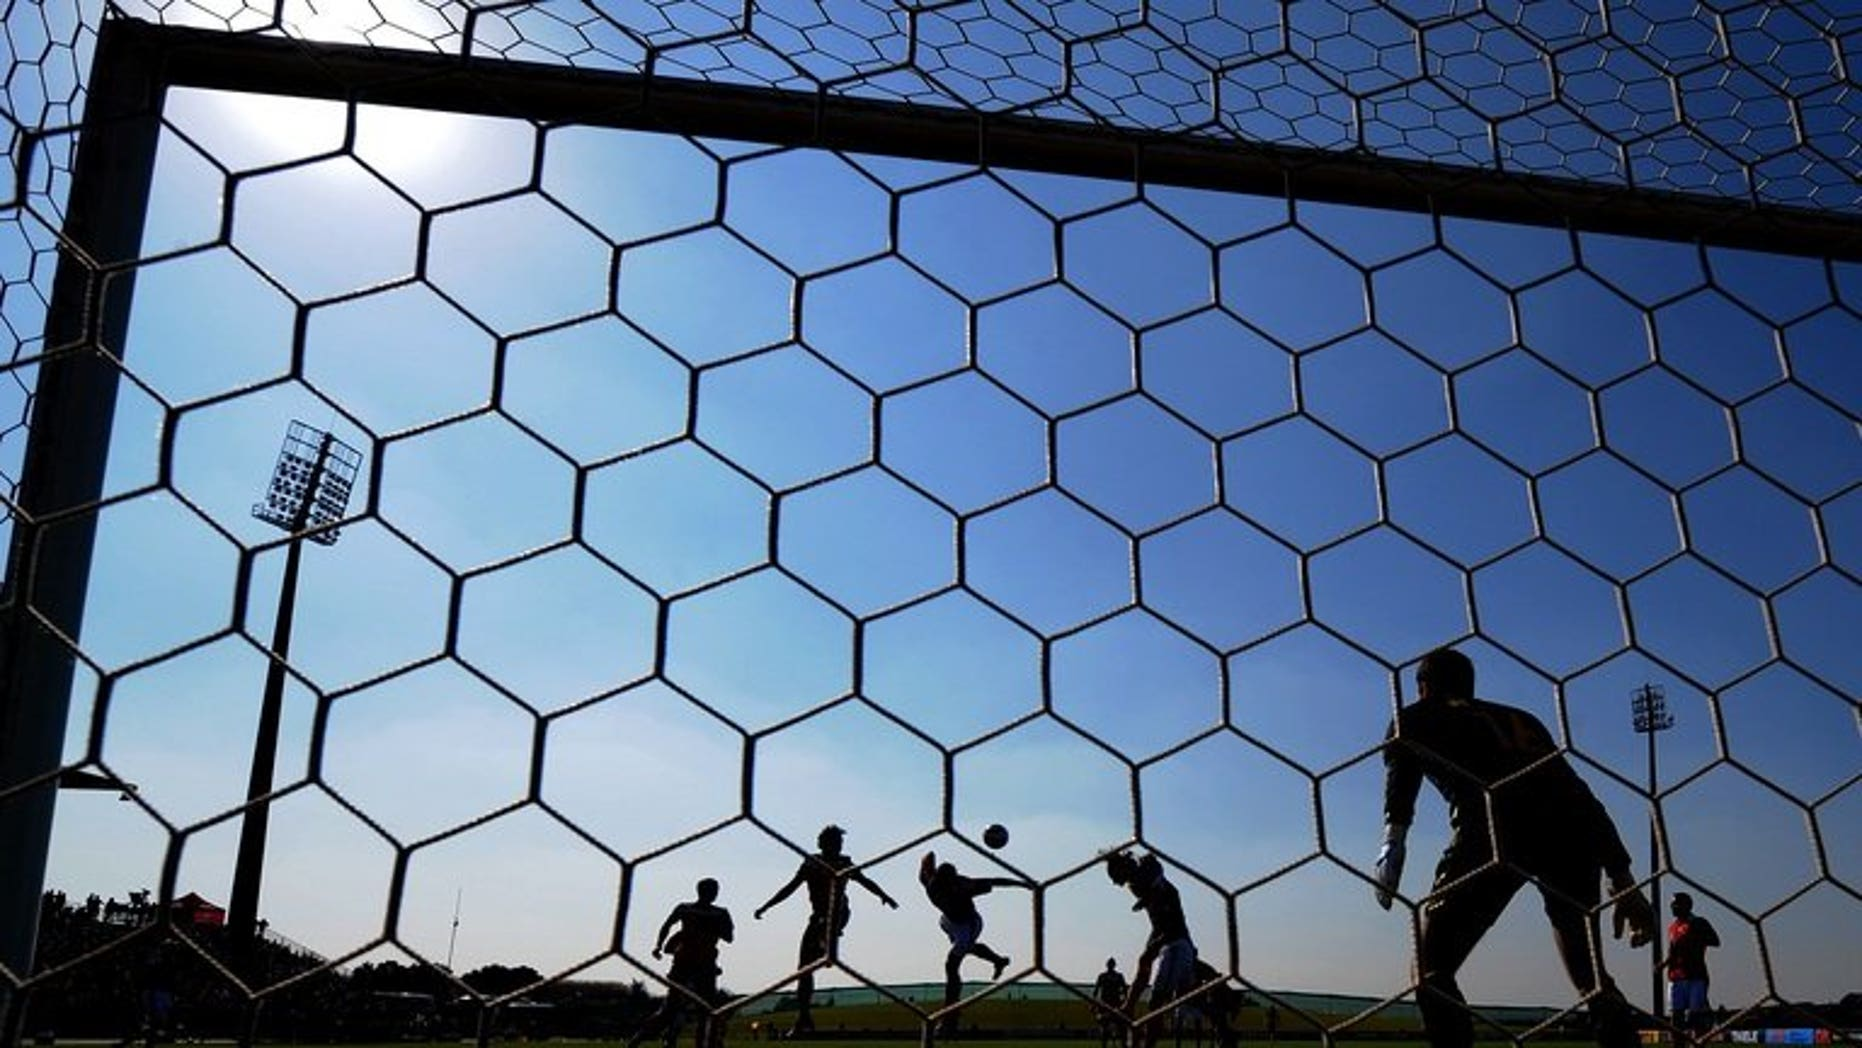 The head of the Australian Football League said Friday he will raise concerns about the sport's infiltration by Asian match-fixing gangs with the incoming Tony Abbott-led government.